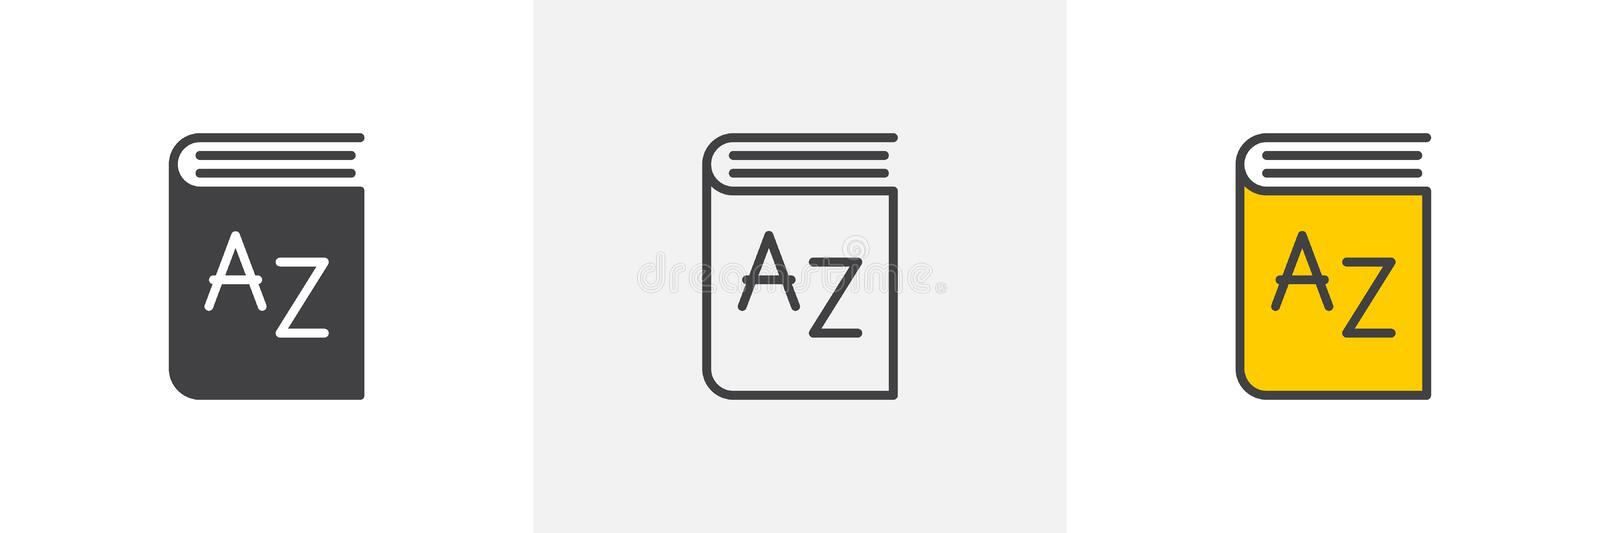 Dictionary book icon vector illustration